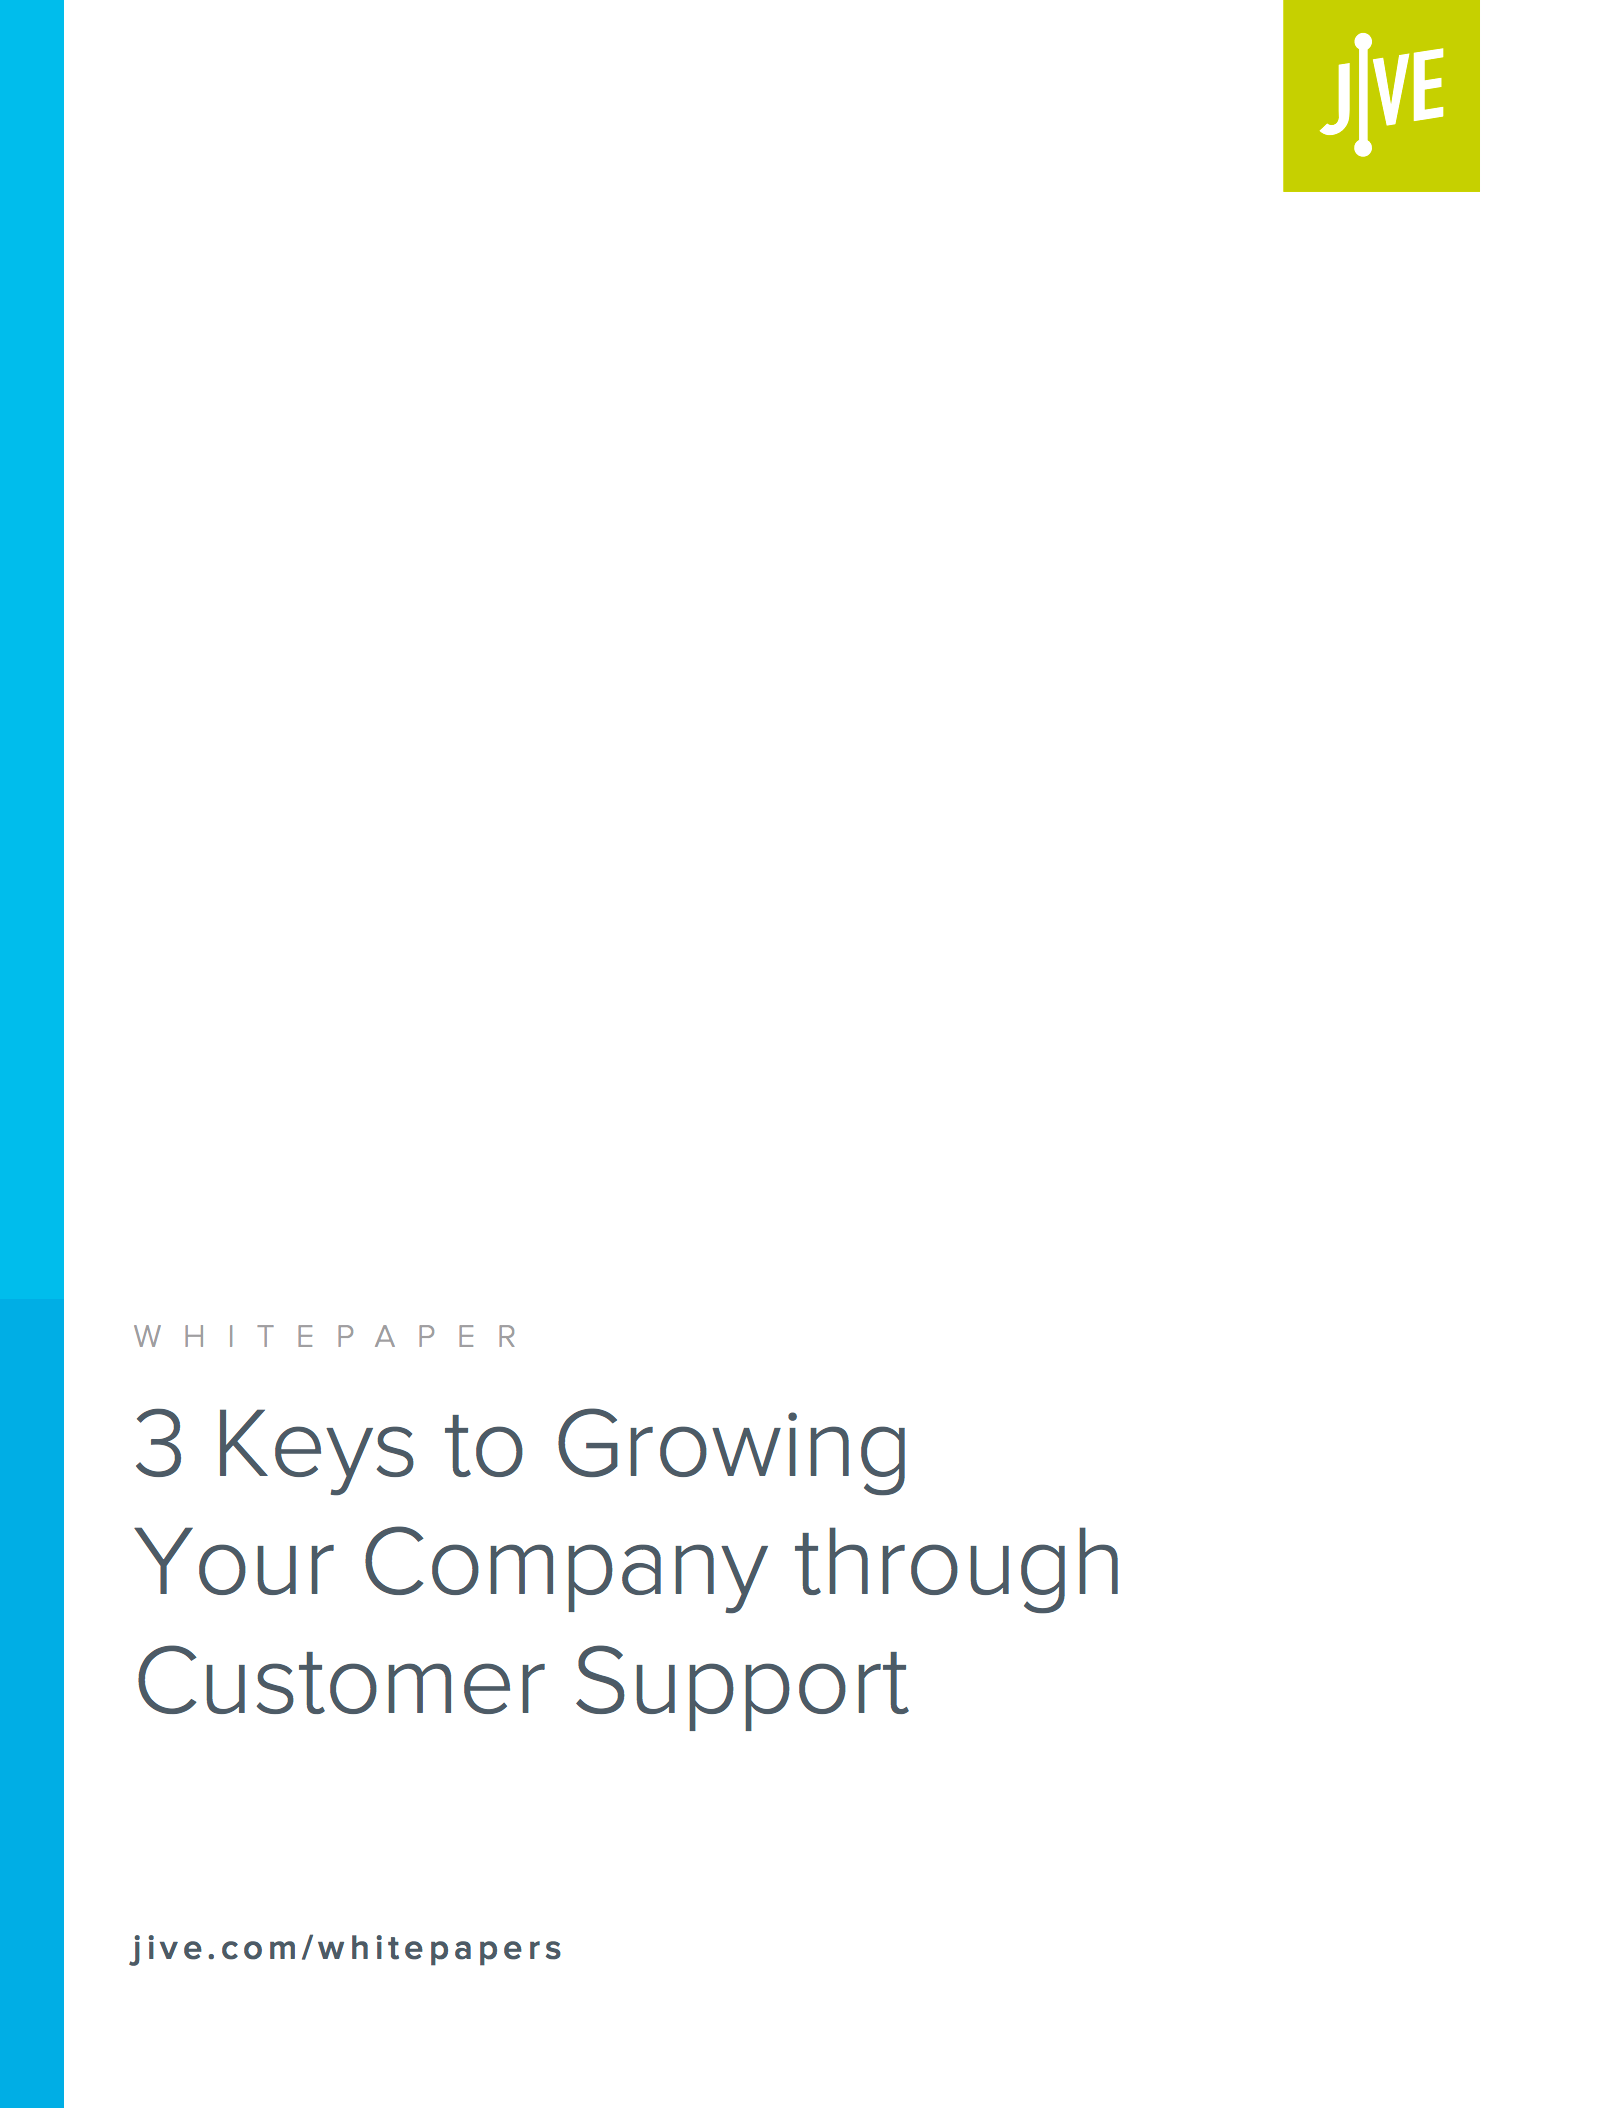 Screen Shot Whitepaper 3 Keys to Growing Your Company through Customer Support